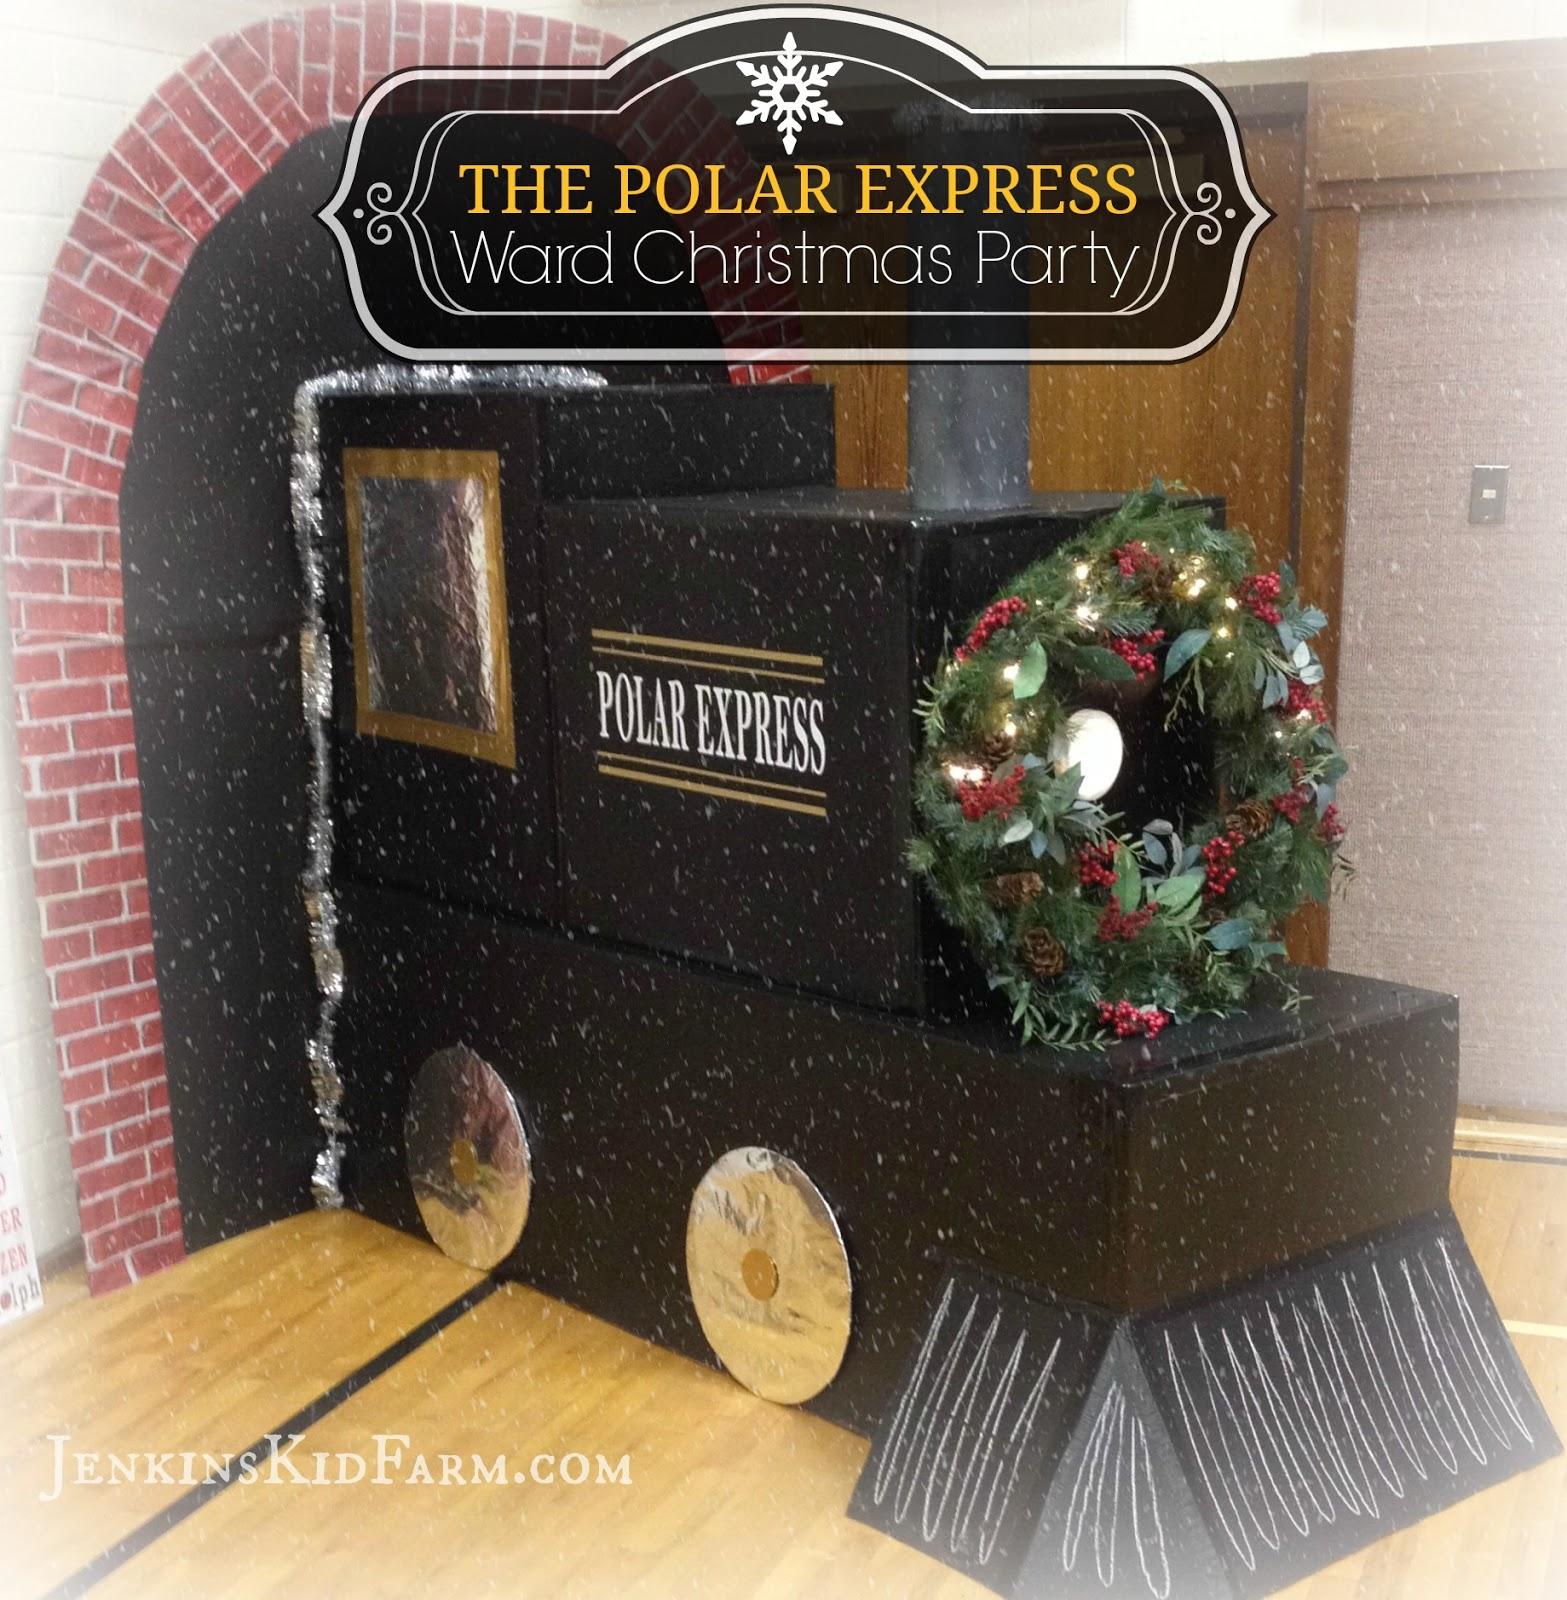 Lds Christmas Party Ideas Part - 33: Polar Express Ward Christmas Party